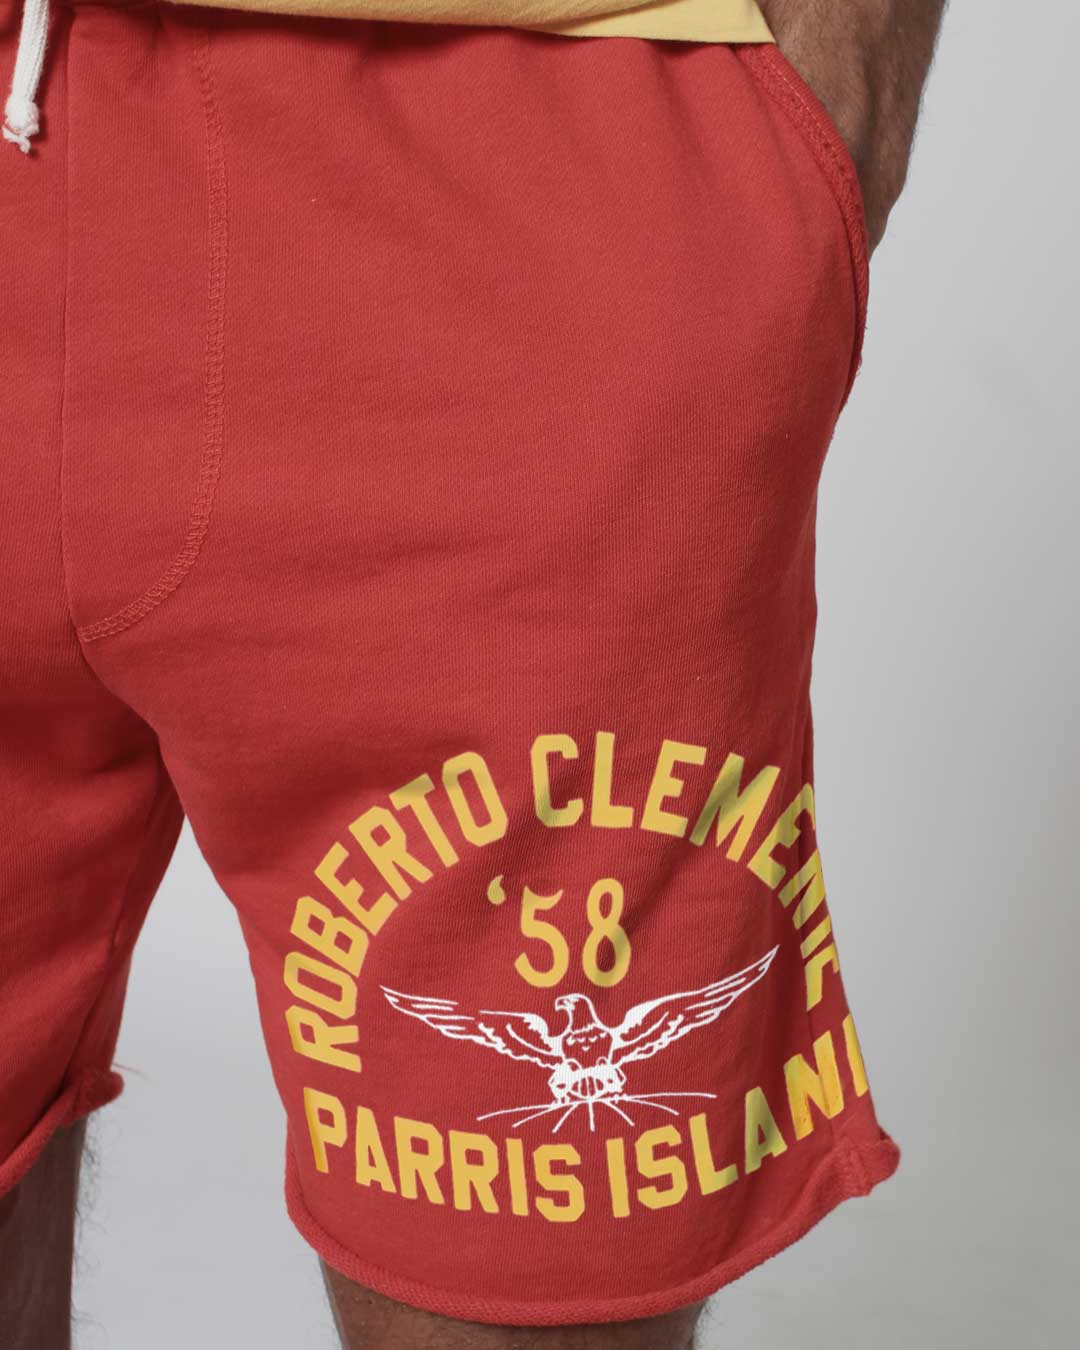 Roberto Clemente Parris Island Shorts - Copasetic Clothing Ltd. dba Roots of Fight